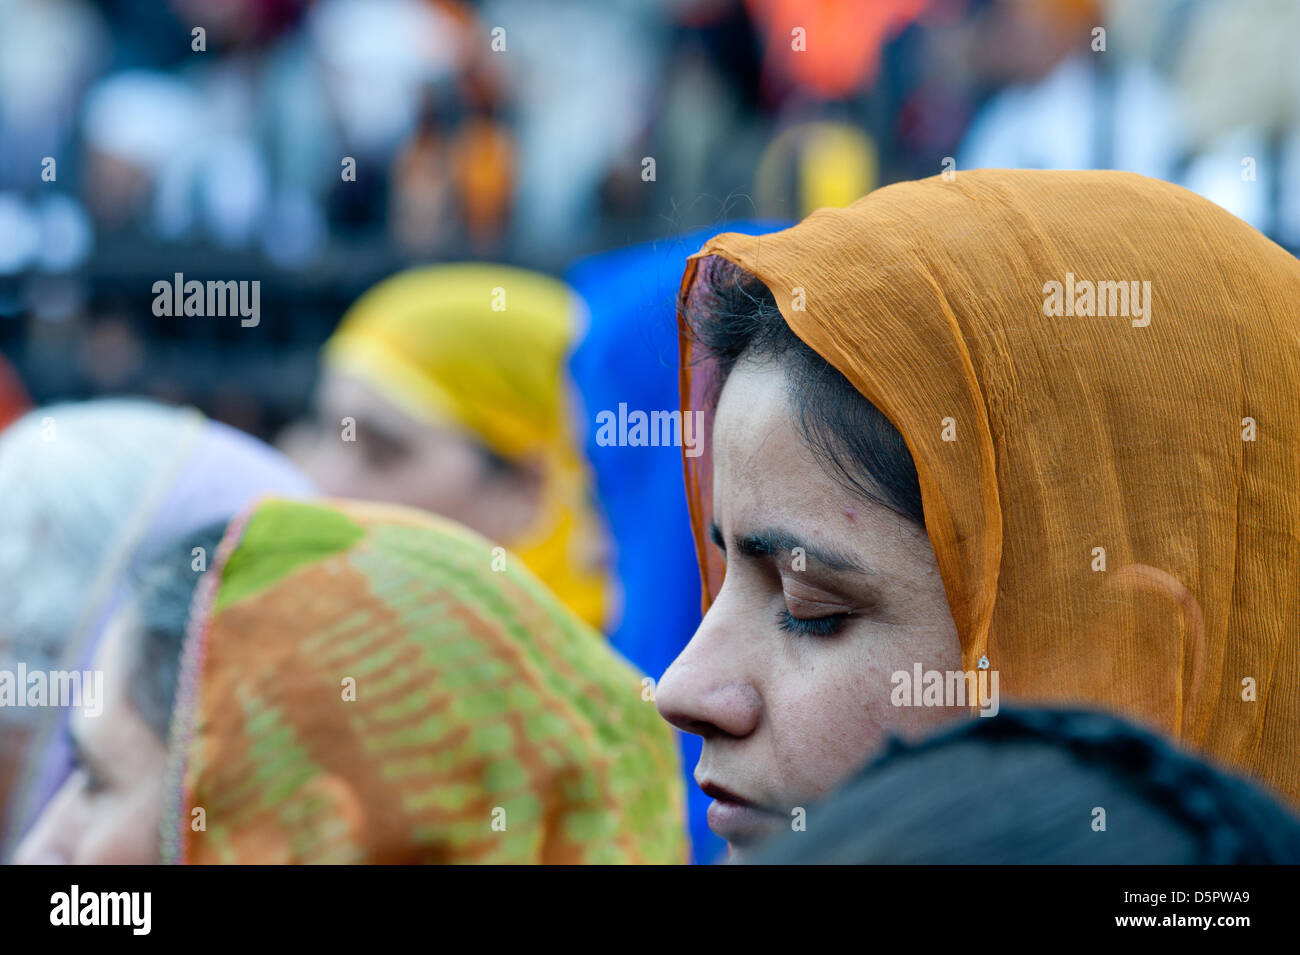 London, UK. 7th April 2013. a woman prays with her eyes closed during the Nagar Kirtan celebrations in Southall, - Stock Image